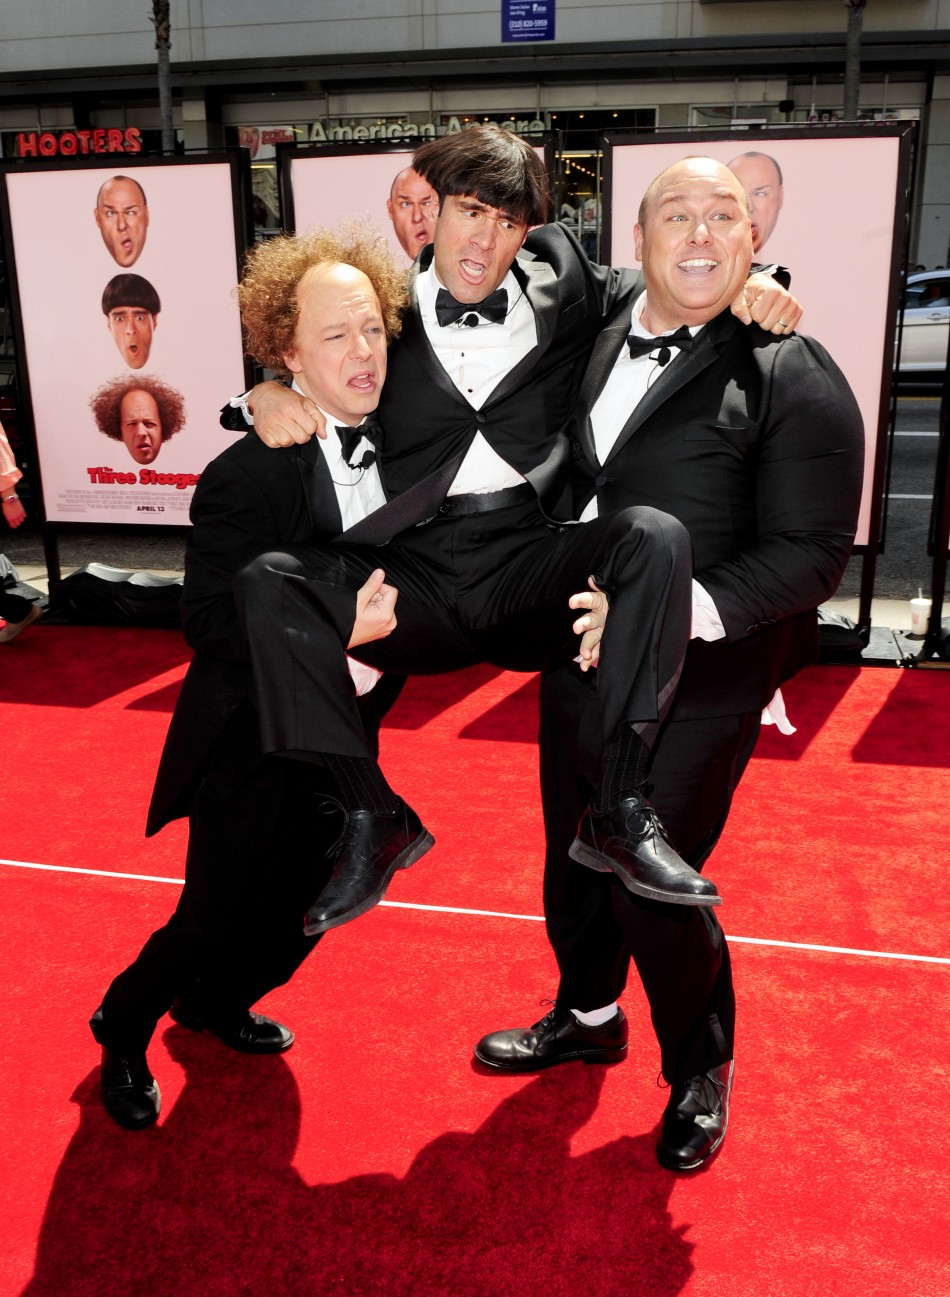 "Actors Sean Hayes who plays Larry, Chris Diamantopoulos who plays Moe, and Will Sasso who plays Curly, arrive in character as the Three Stooges at the Hollywood premiere of ""The Three Stooges: The Movie"" in Los Angeles"